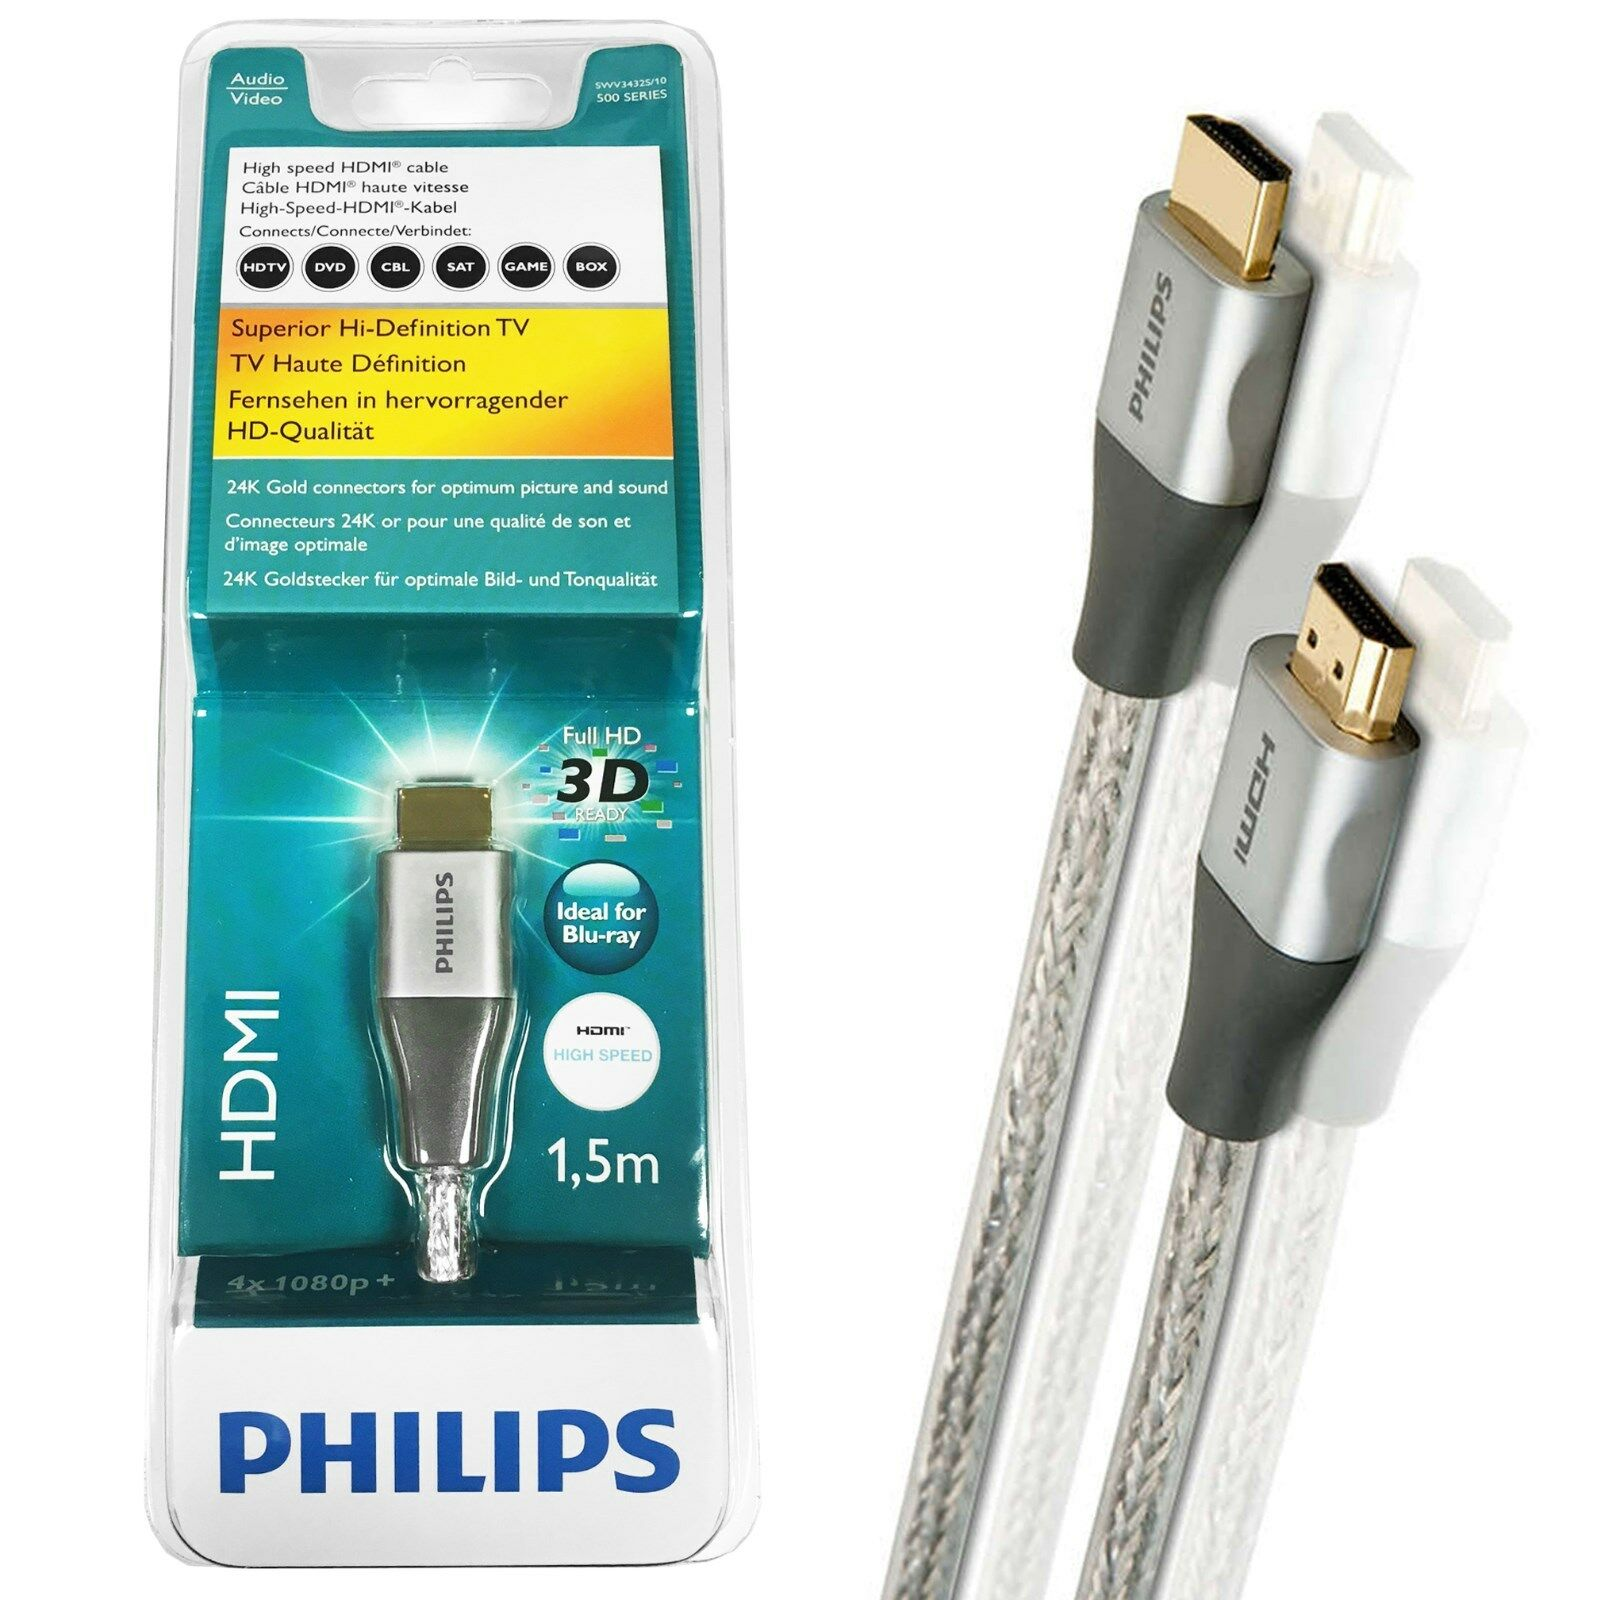 Philips (SWV3432S/10) 1.5 m HDMI Cable | eBay